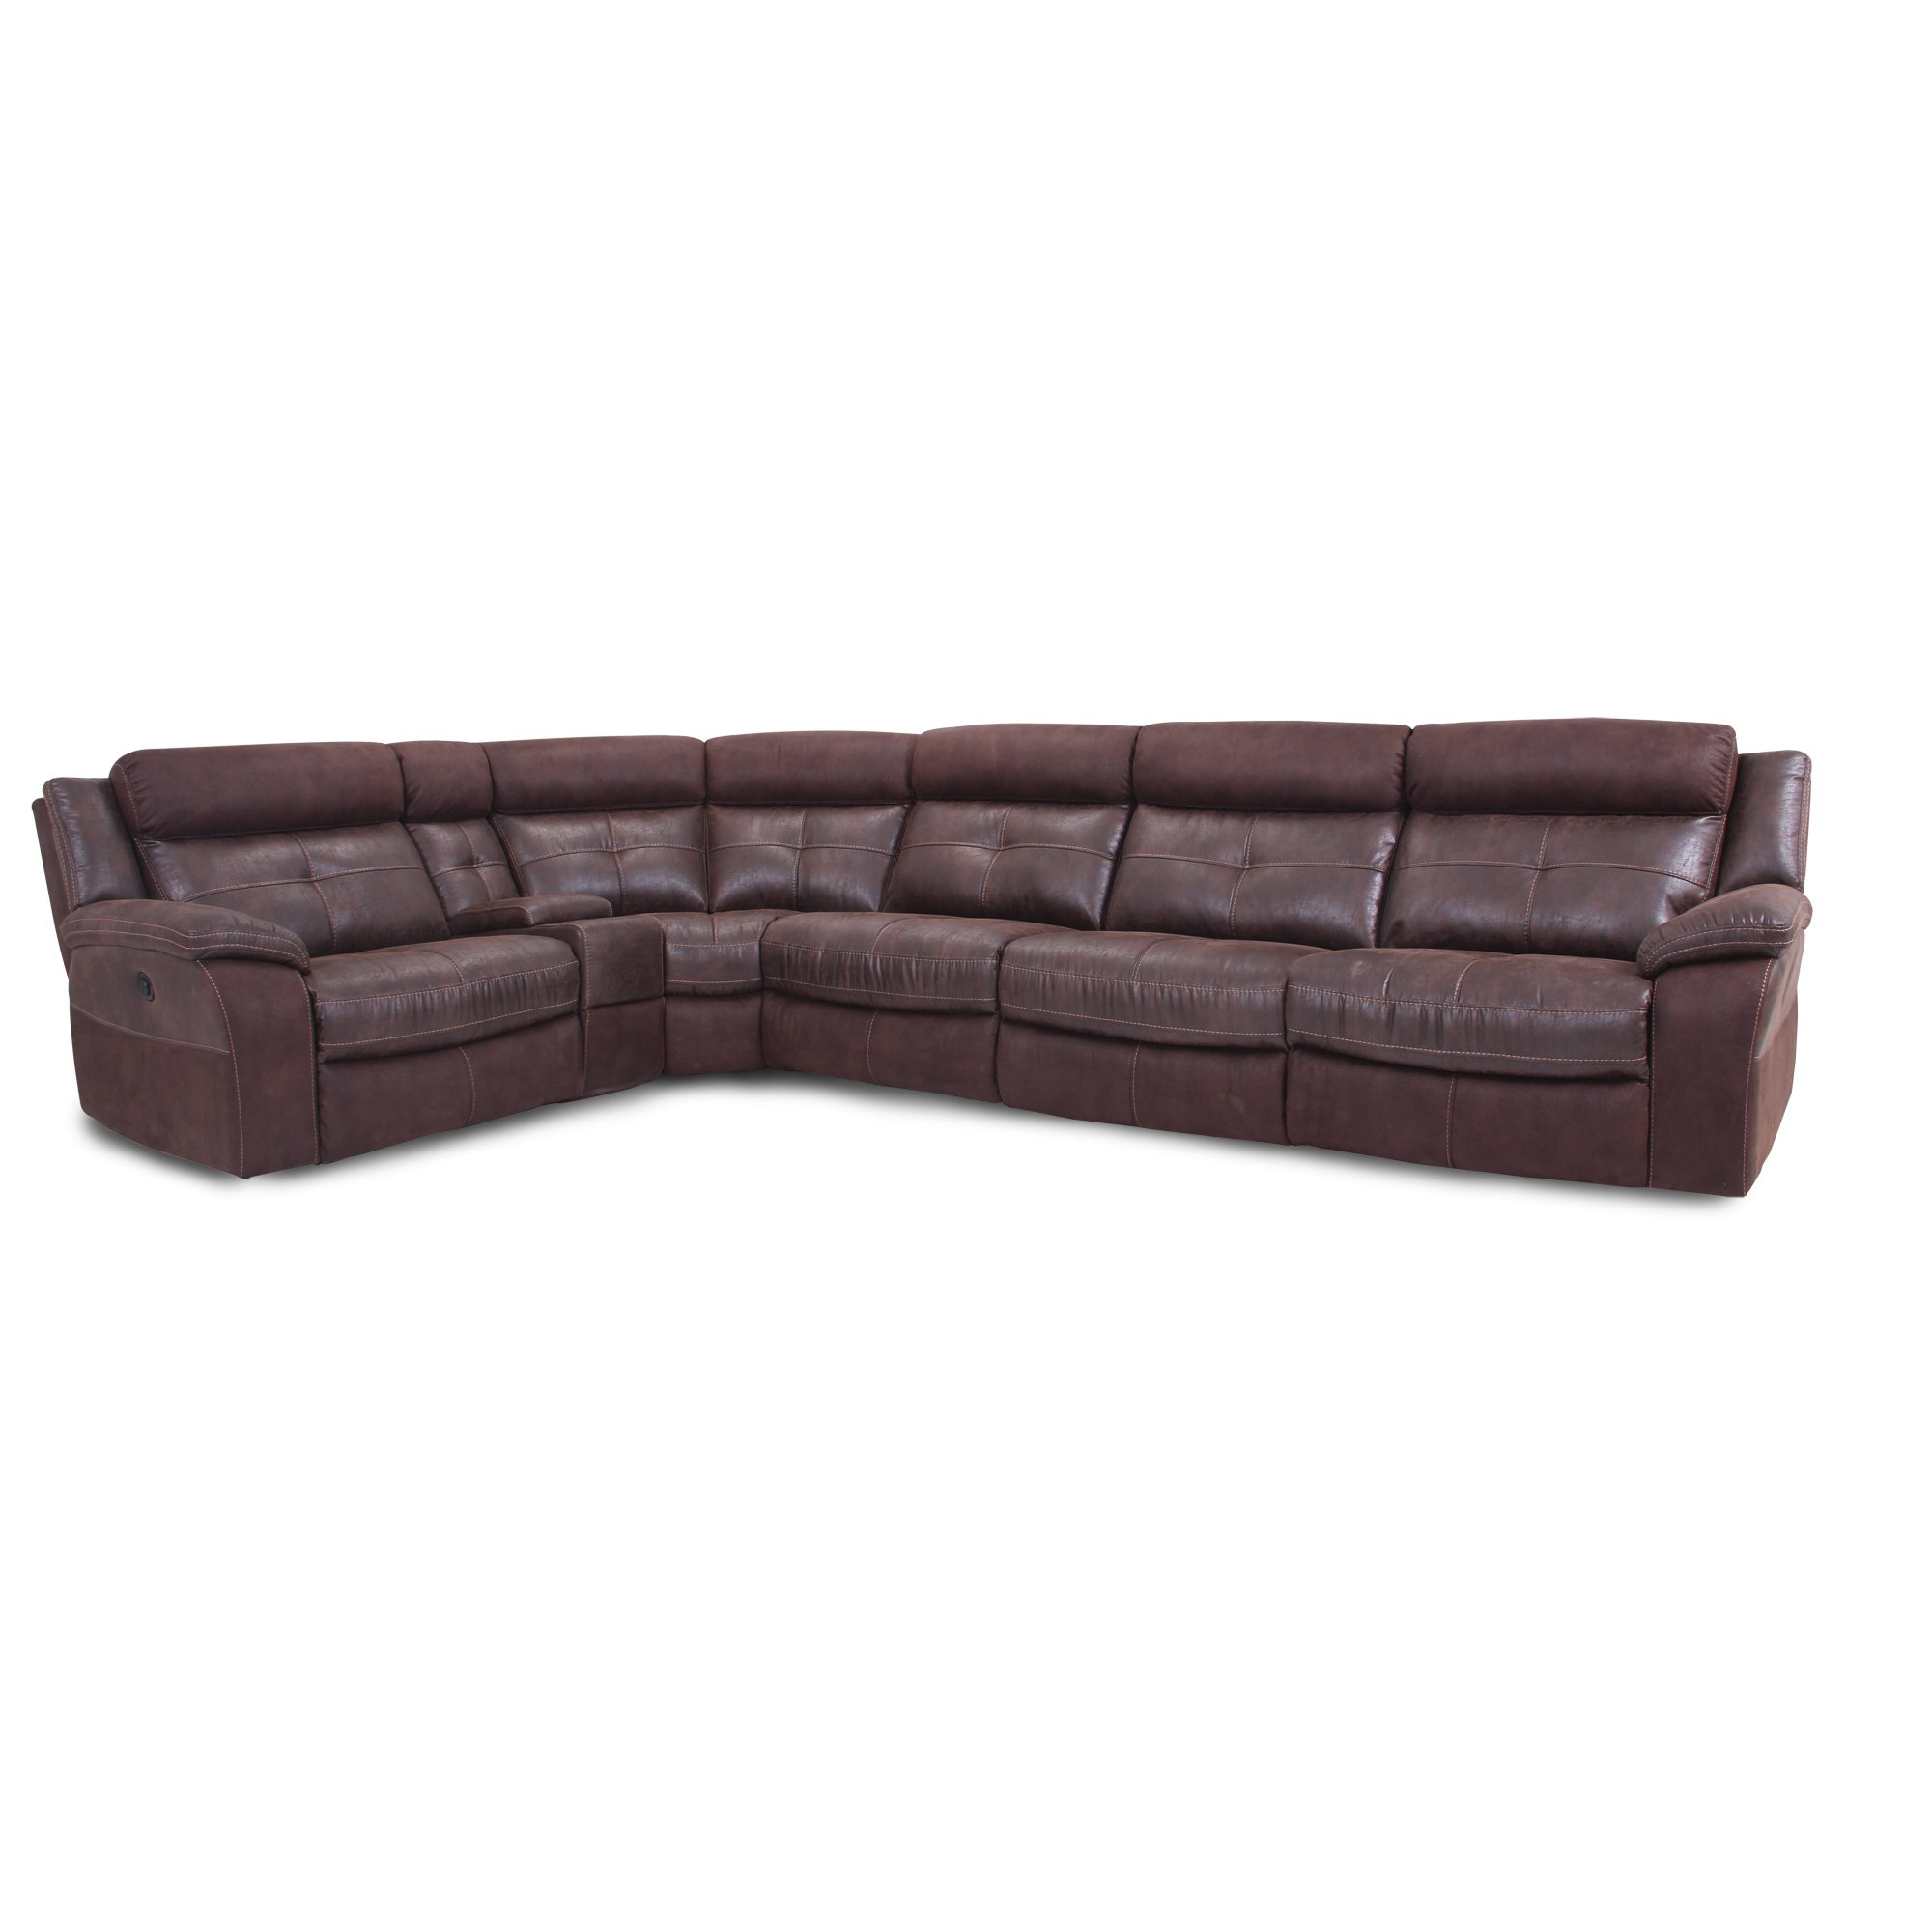 Microfiber Sectional Sofa Brown 6 Piece 3x Manual Reclining Sectional Sofa Denver